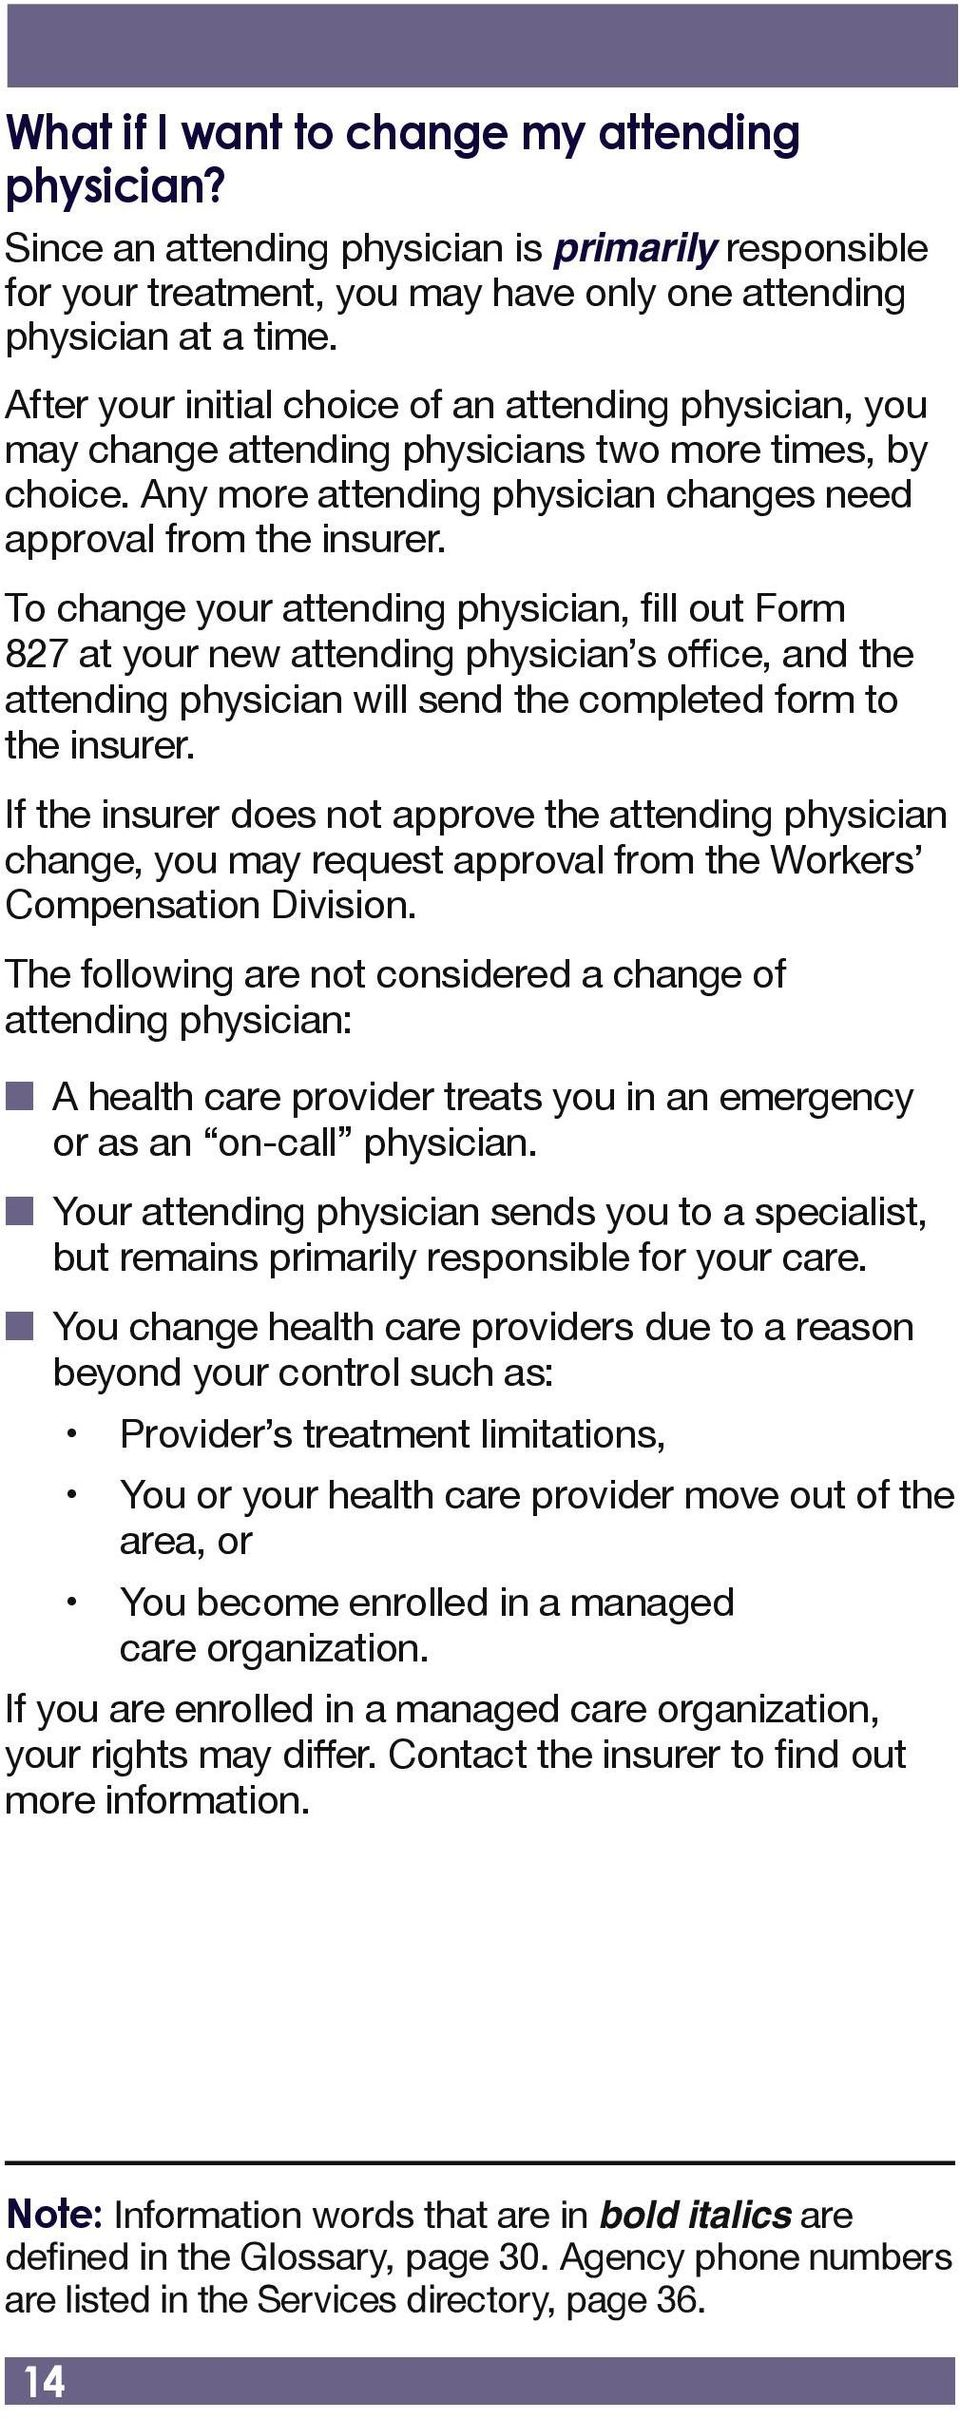 To change your attending physician, fill out Form 827 at your new attending physician s office, and the attending physician will send the completed form to the insurer.